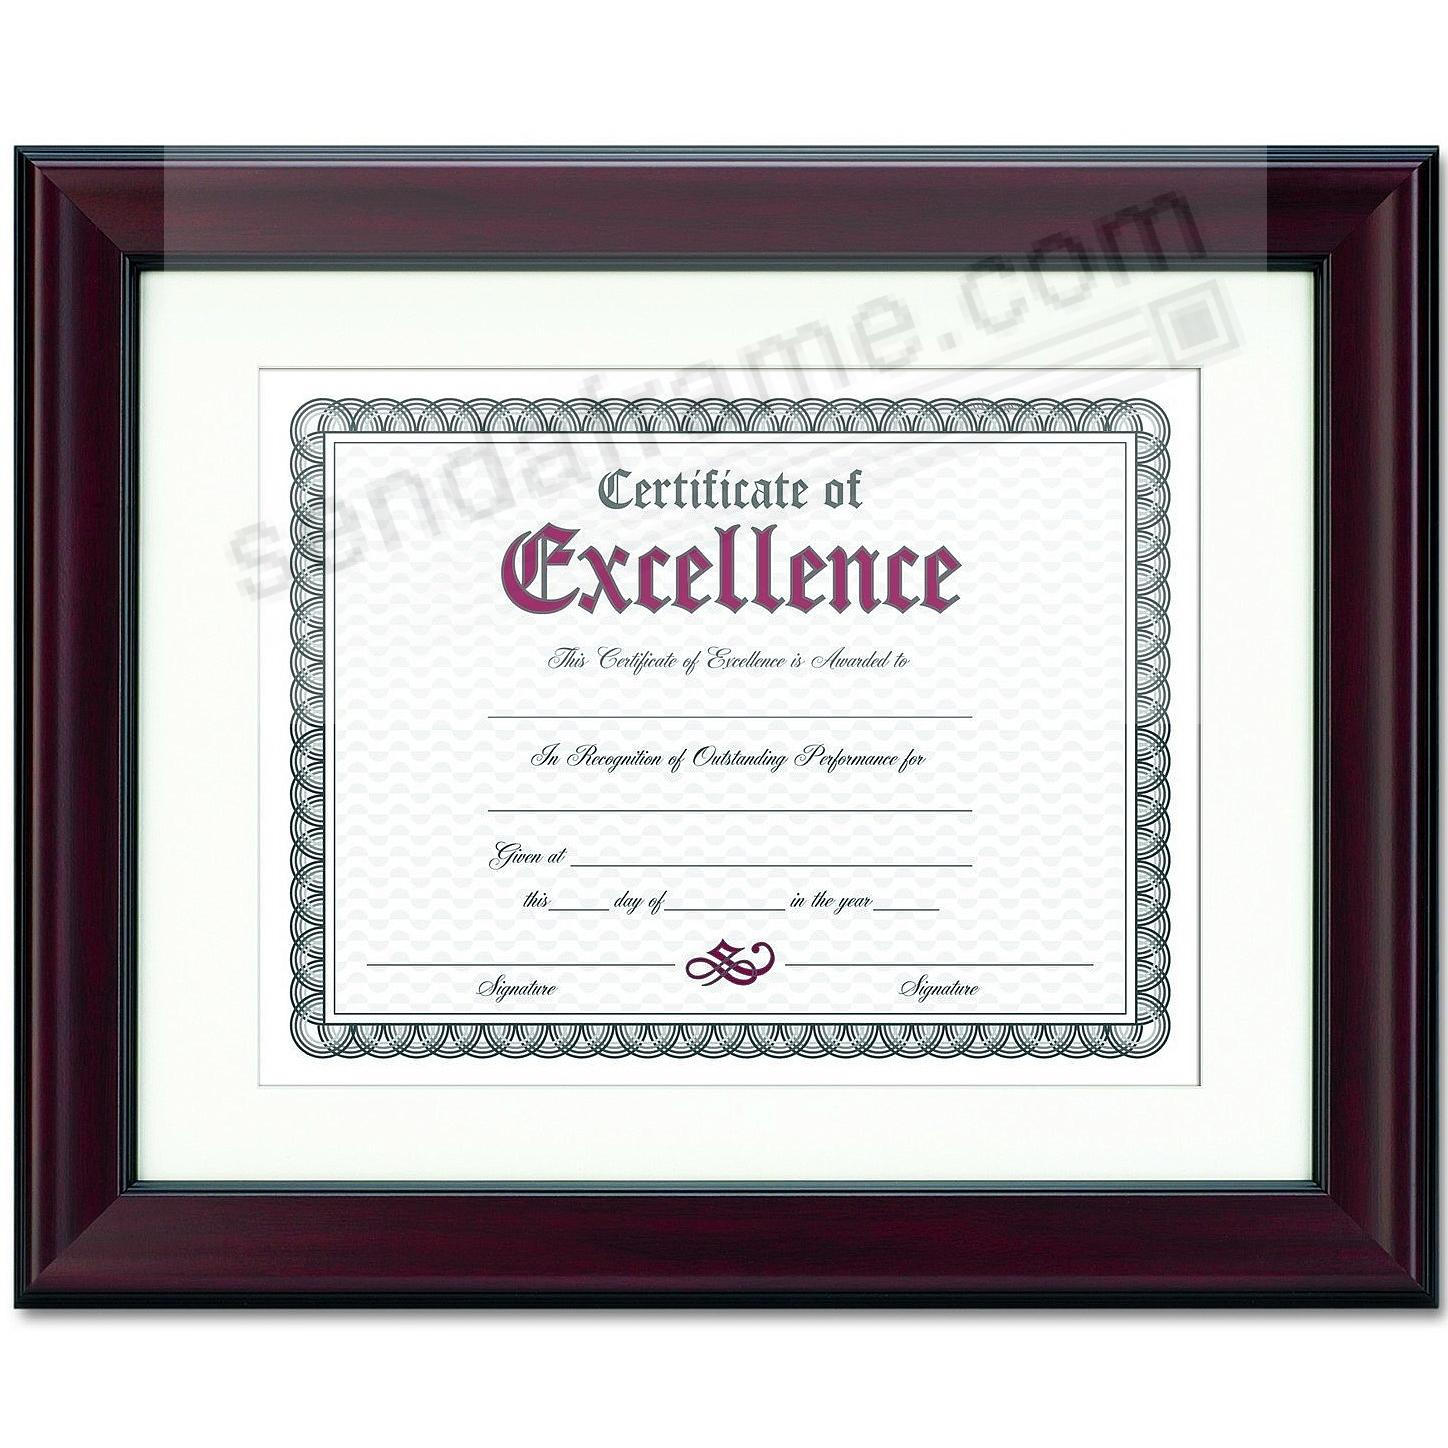 Rosewood/Black Certificate double matted frame by DAX/Connoisseur®